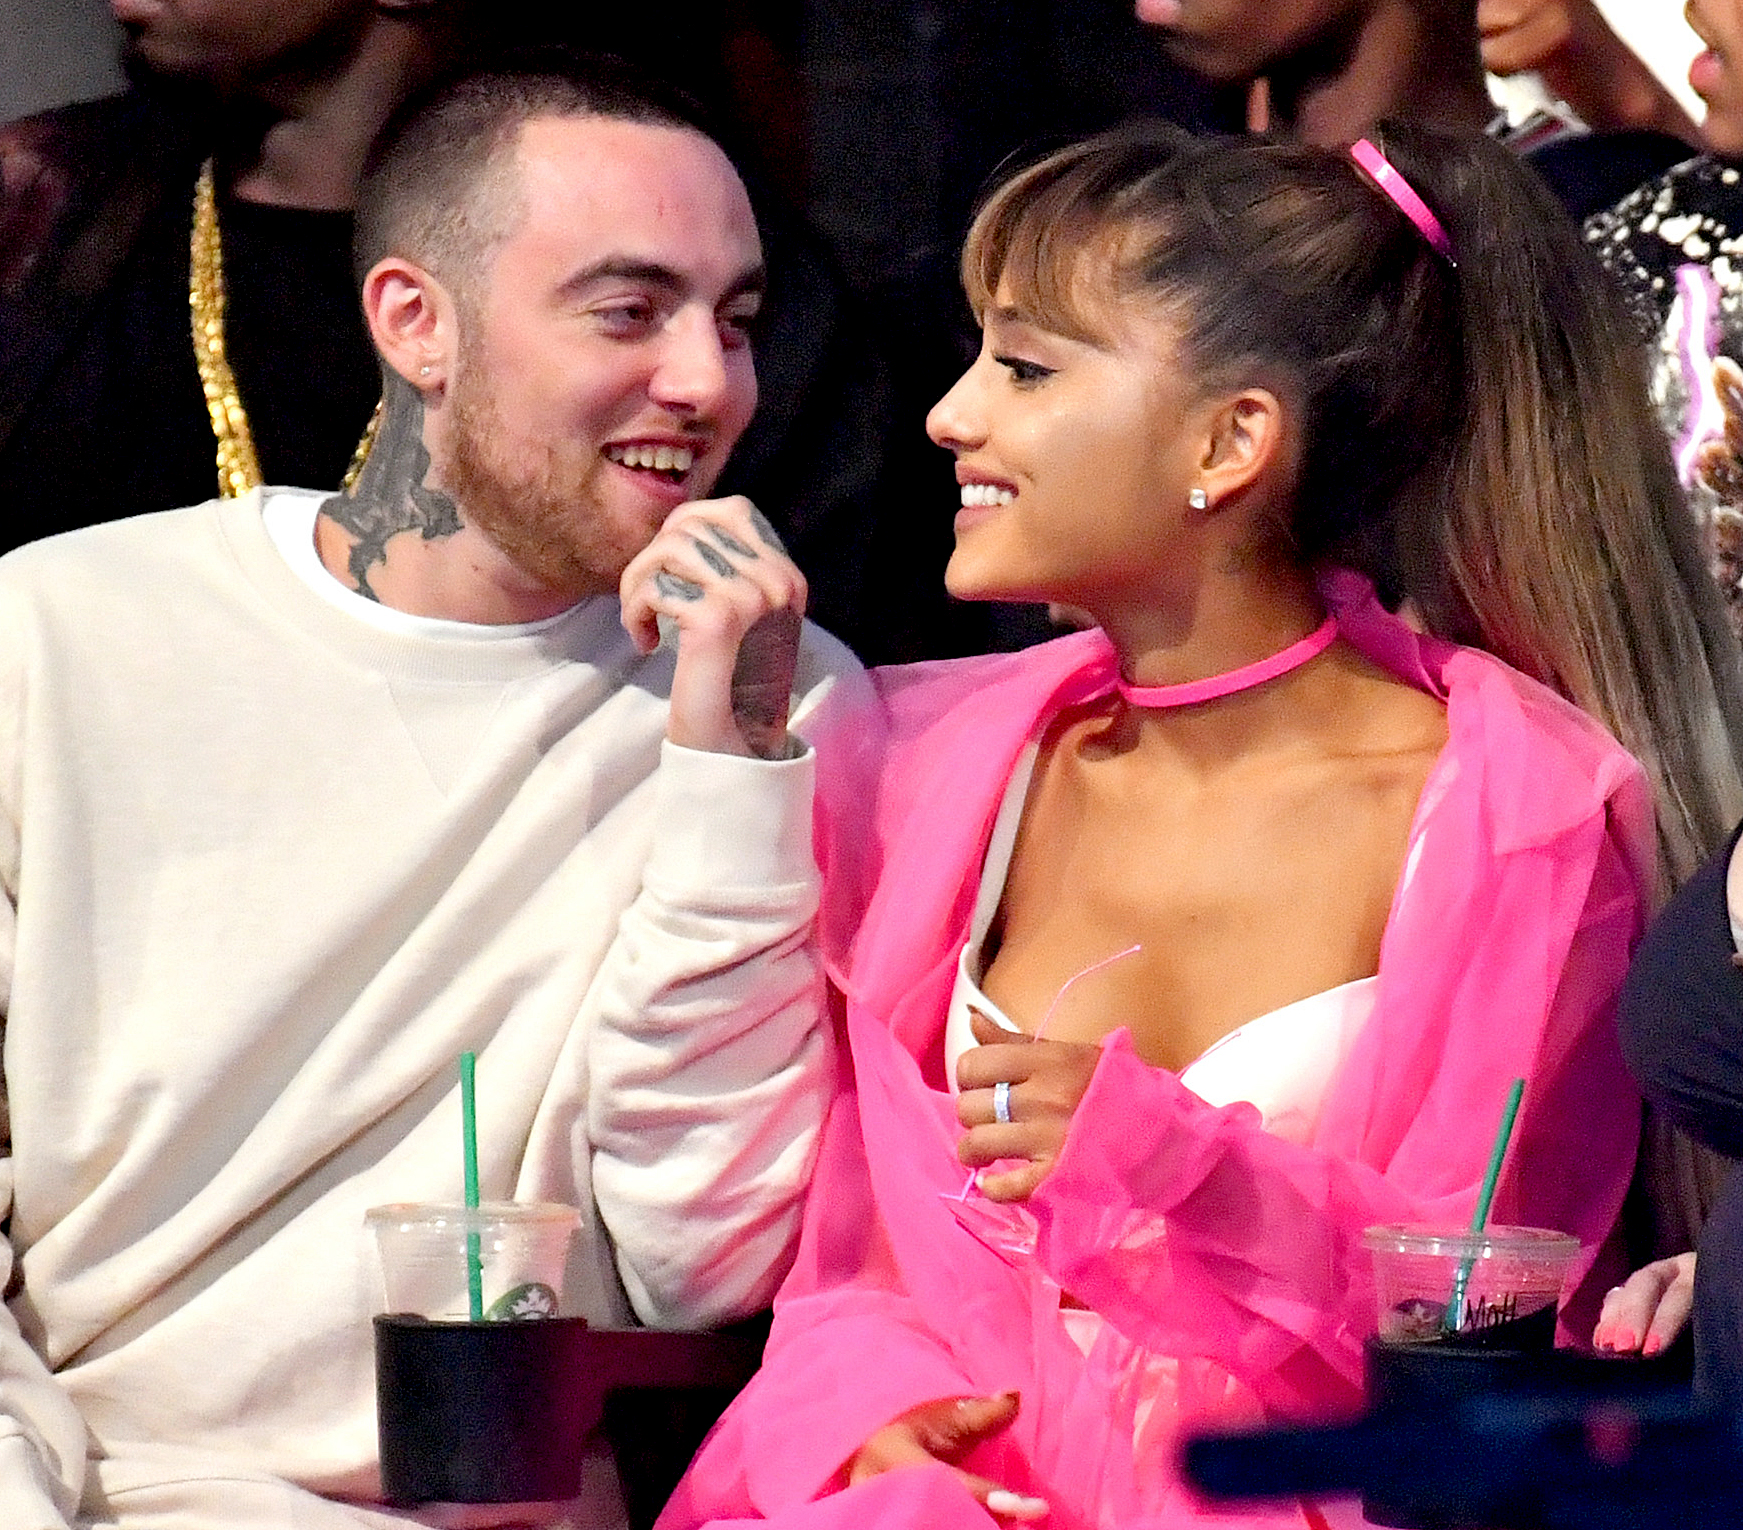 Ariana-Grande-tribute-to-Mac-Miller-Coachella - Mac Miller and Ariana Grande attend the 2016 MTV Video Music Awards at Madison Square Garden on August 28, 2016 in New York City.